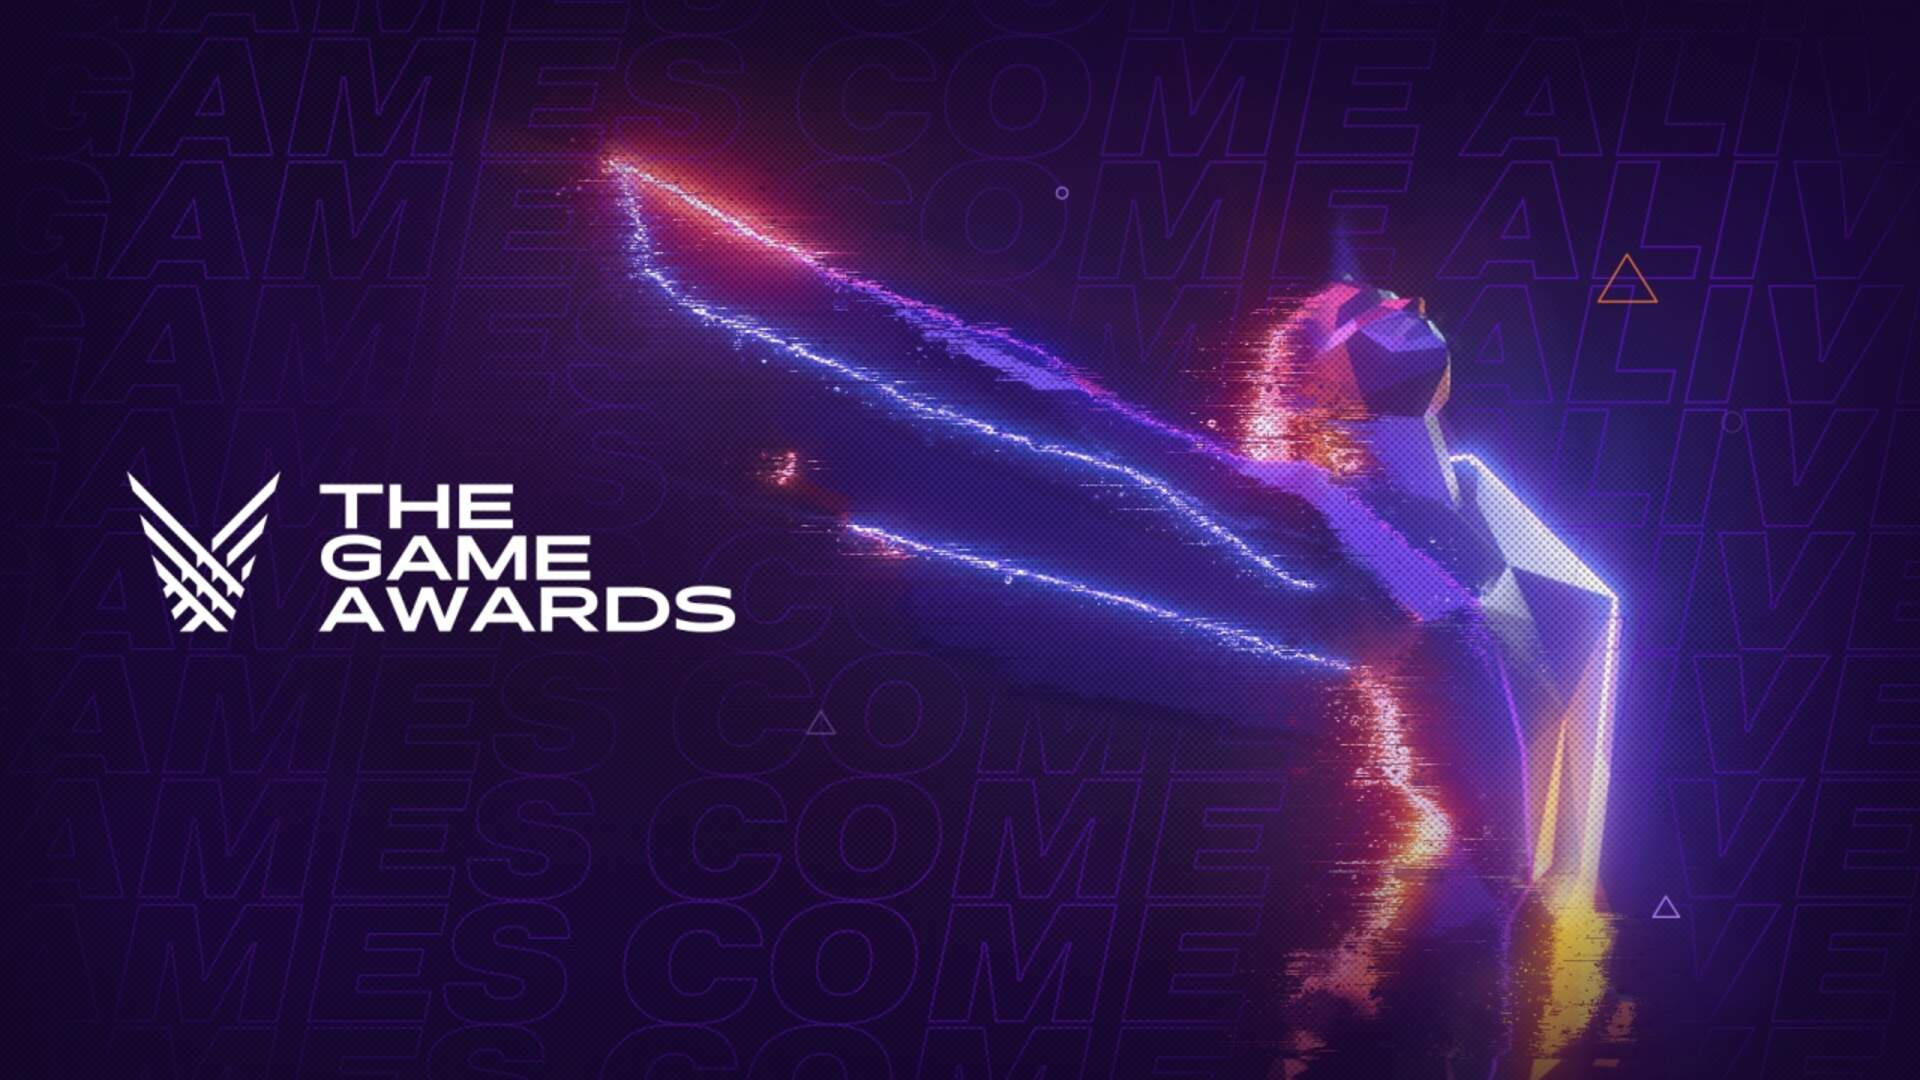 The Game Awards 2019 Air Tonight: Where to Watch and What to Expect